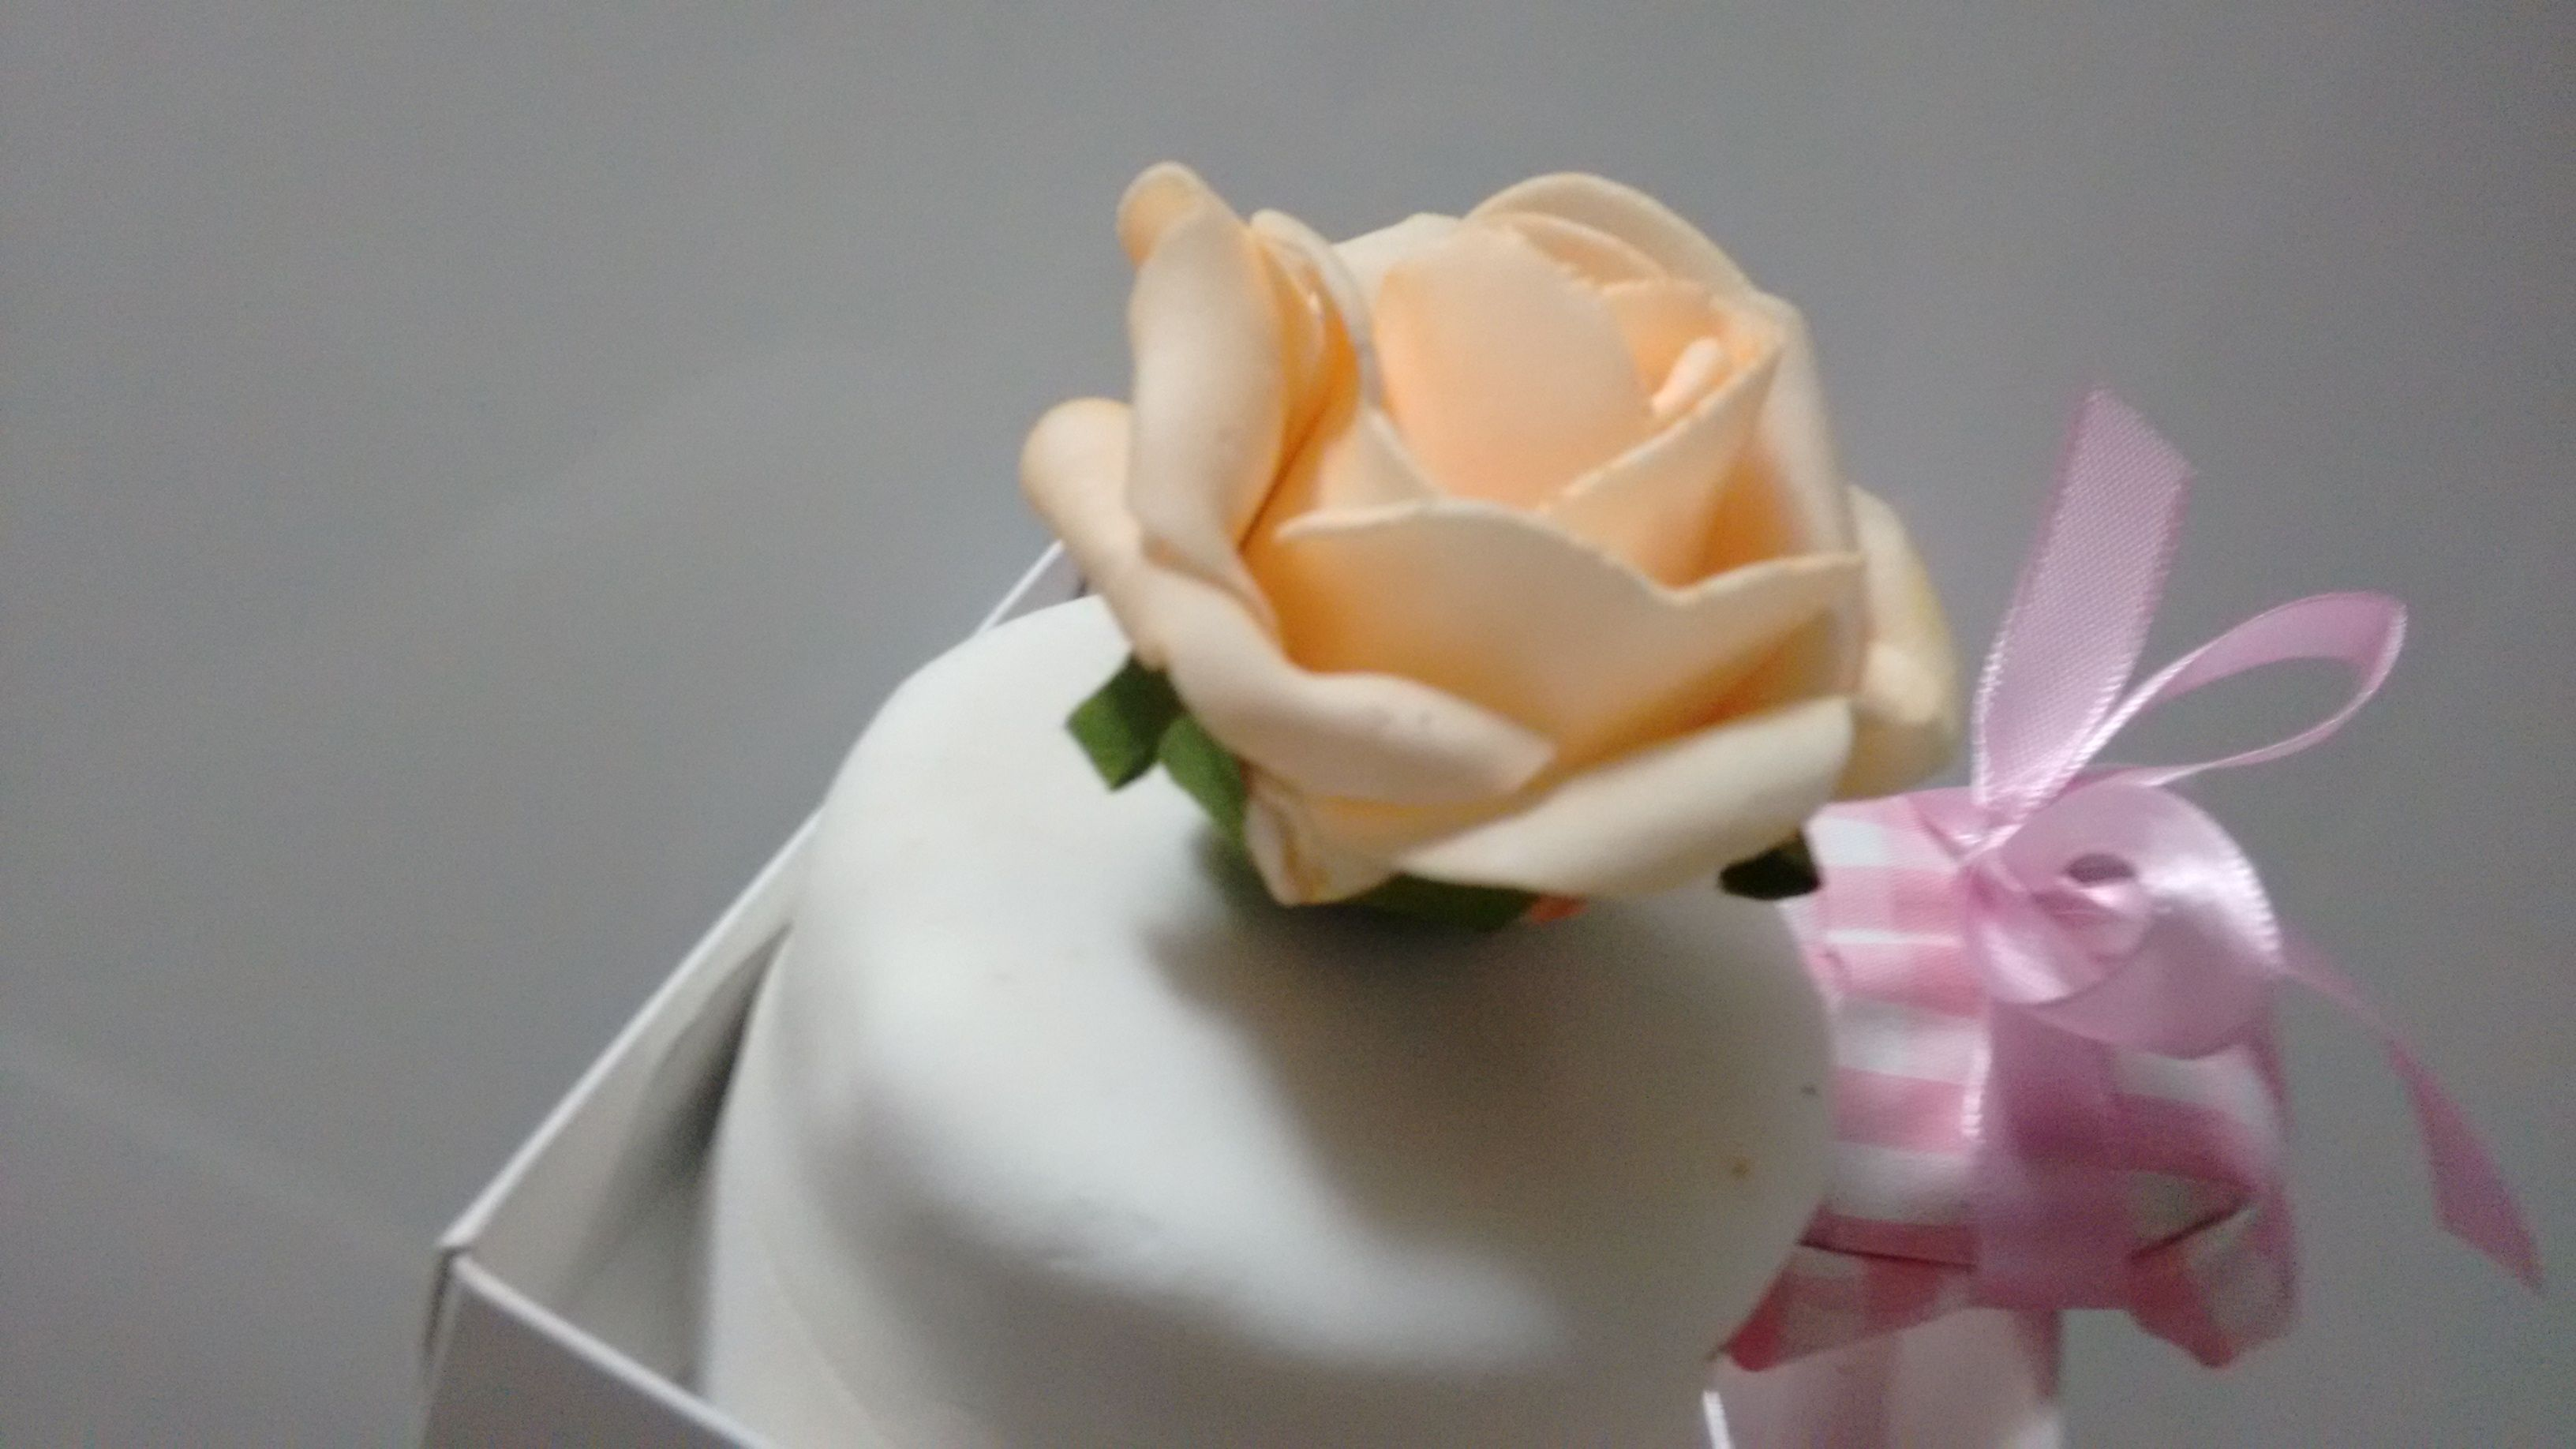 Nice wedding cake - this is a well-married cake? I don't know the difference between the sweets, but it was good.